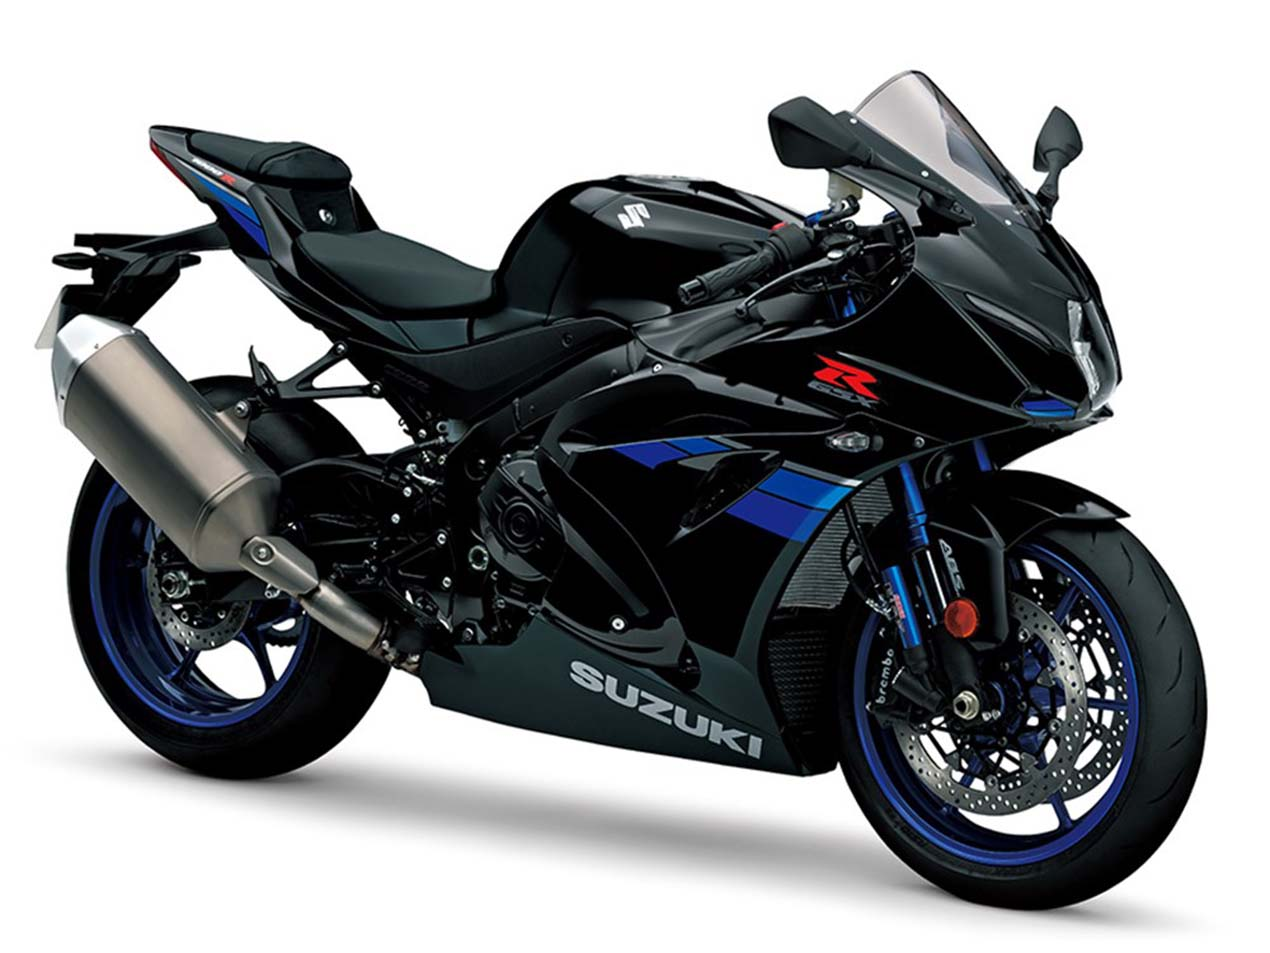 suzuki gsx r1000 archives asphalt rubber. Black Bedroom Furniture Sets. Home Design Ideas